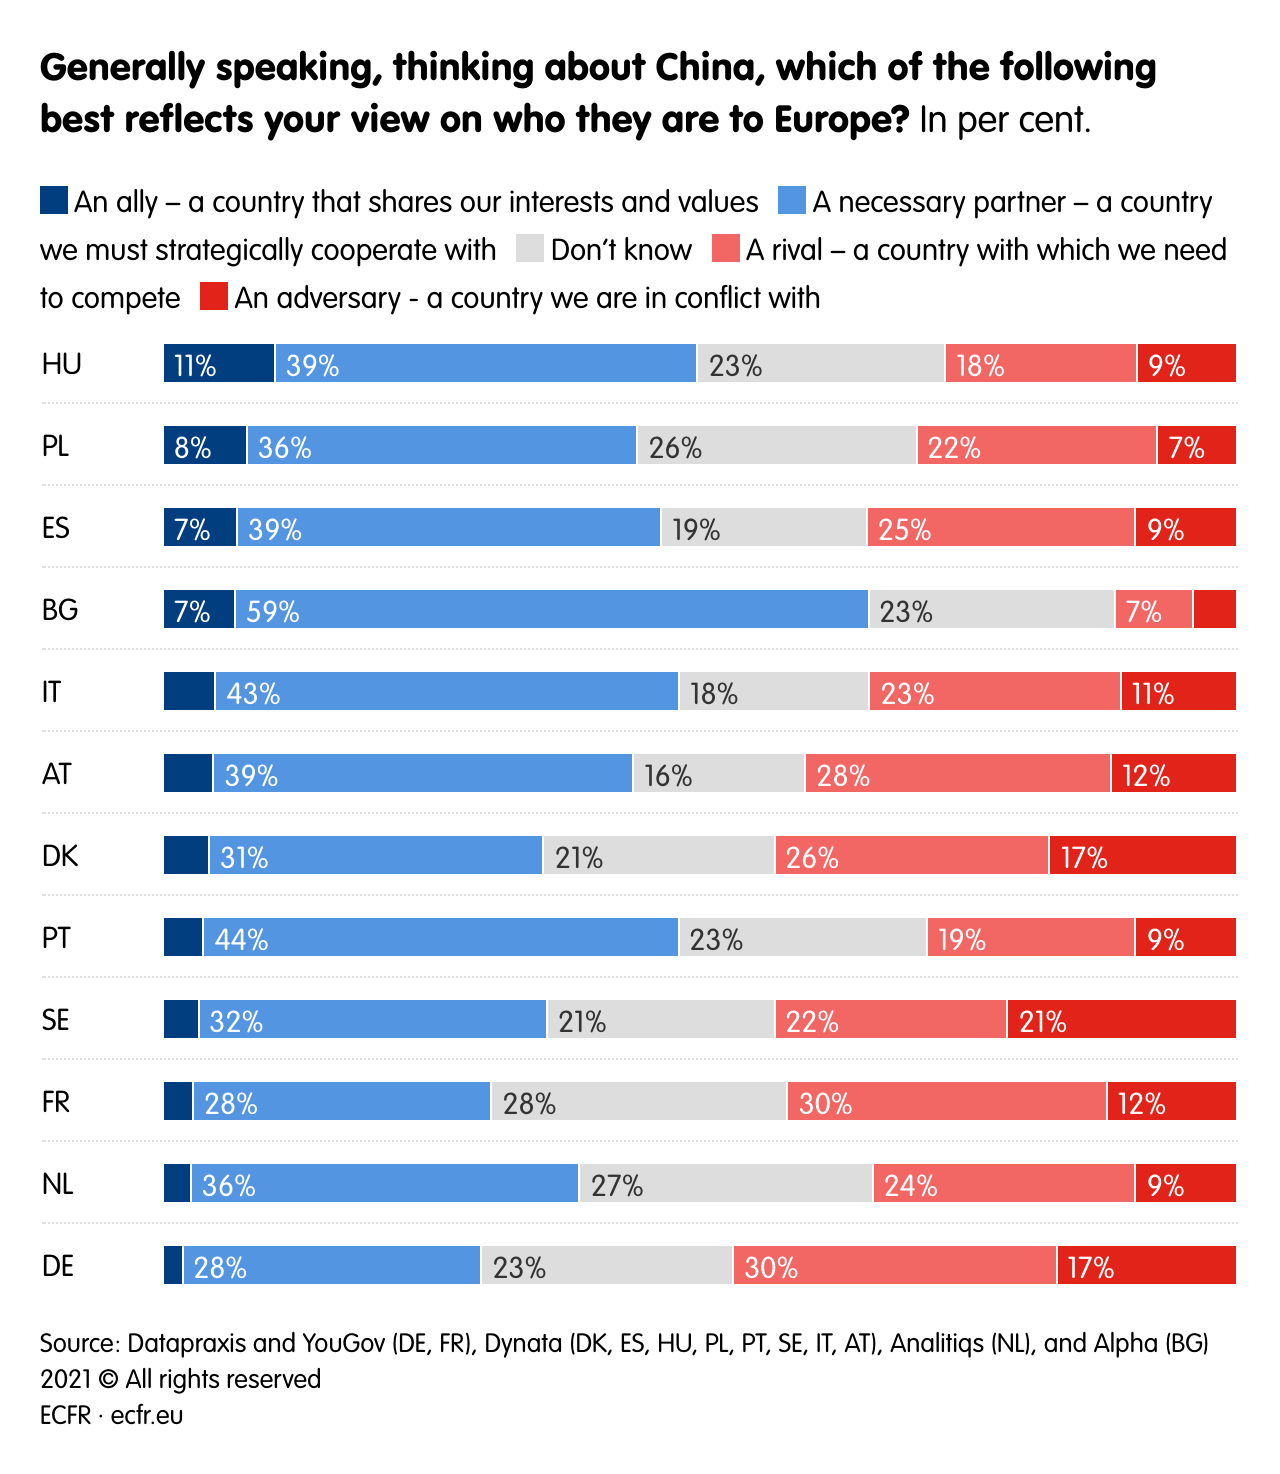 China is widely considered a necessary partner in a majority of EU countries.